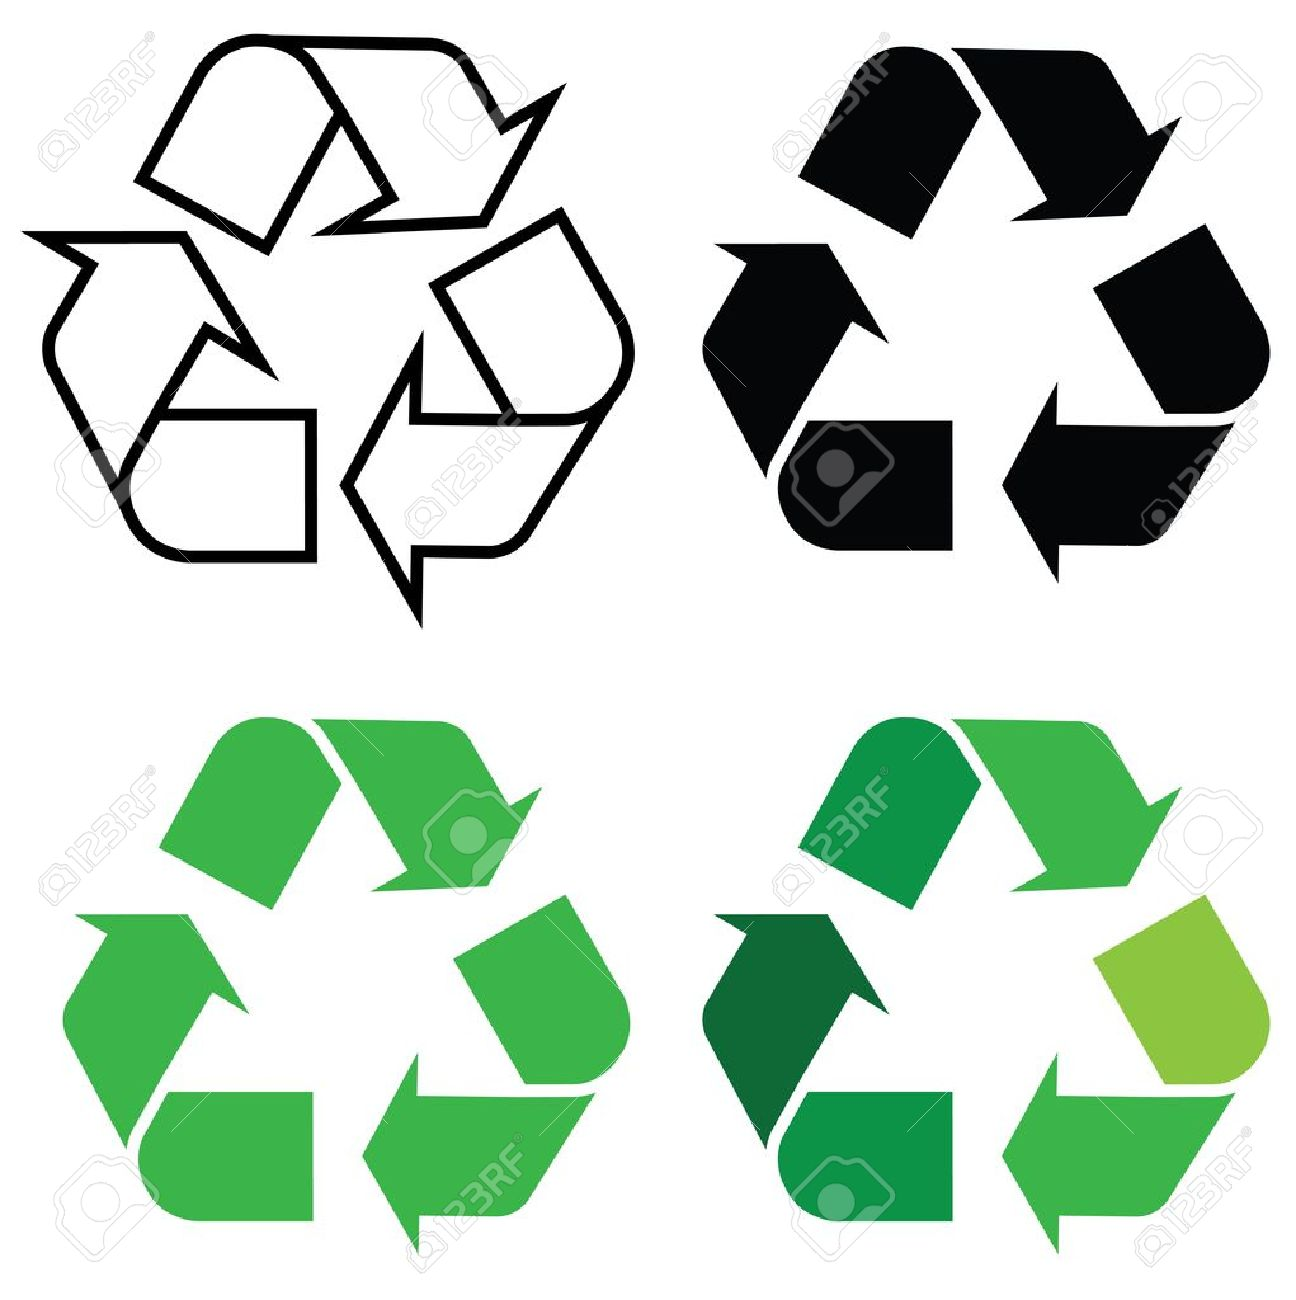 recycle sign in different format, for eco environments. Stock Vector - 11820935